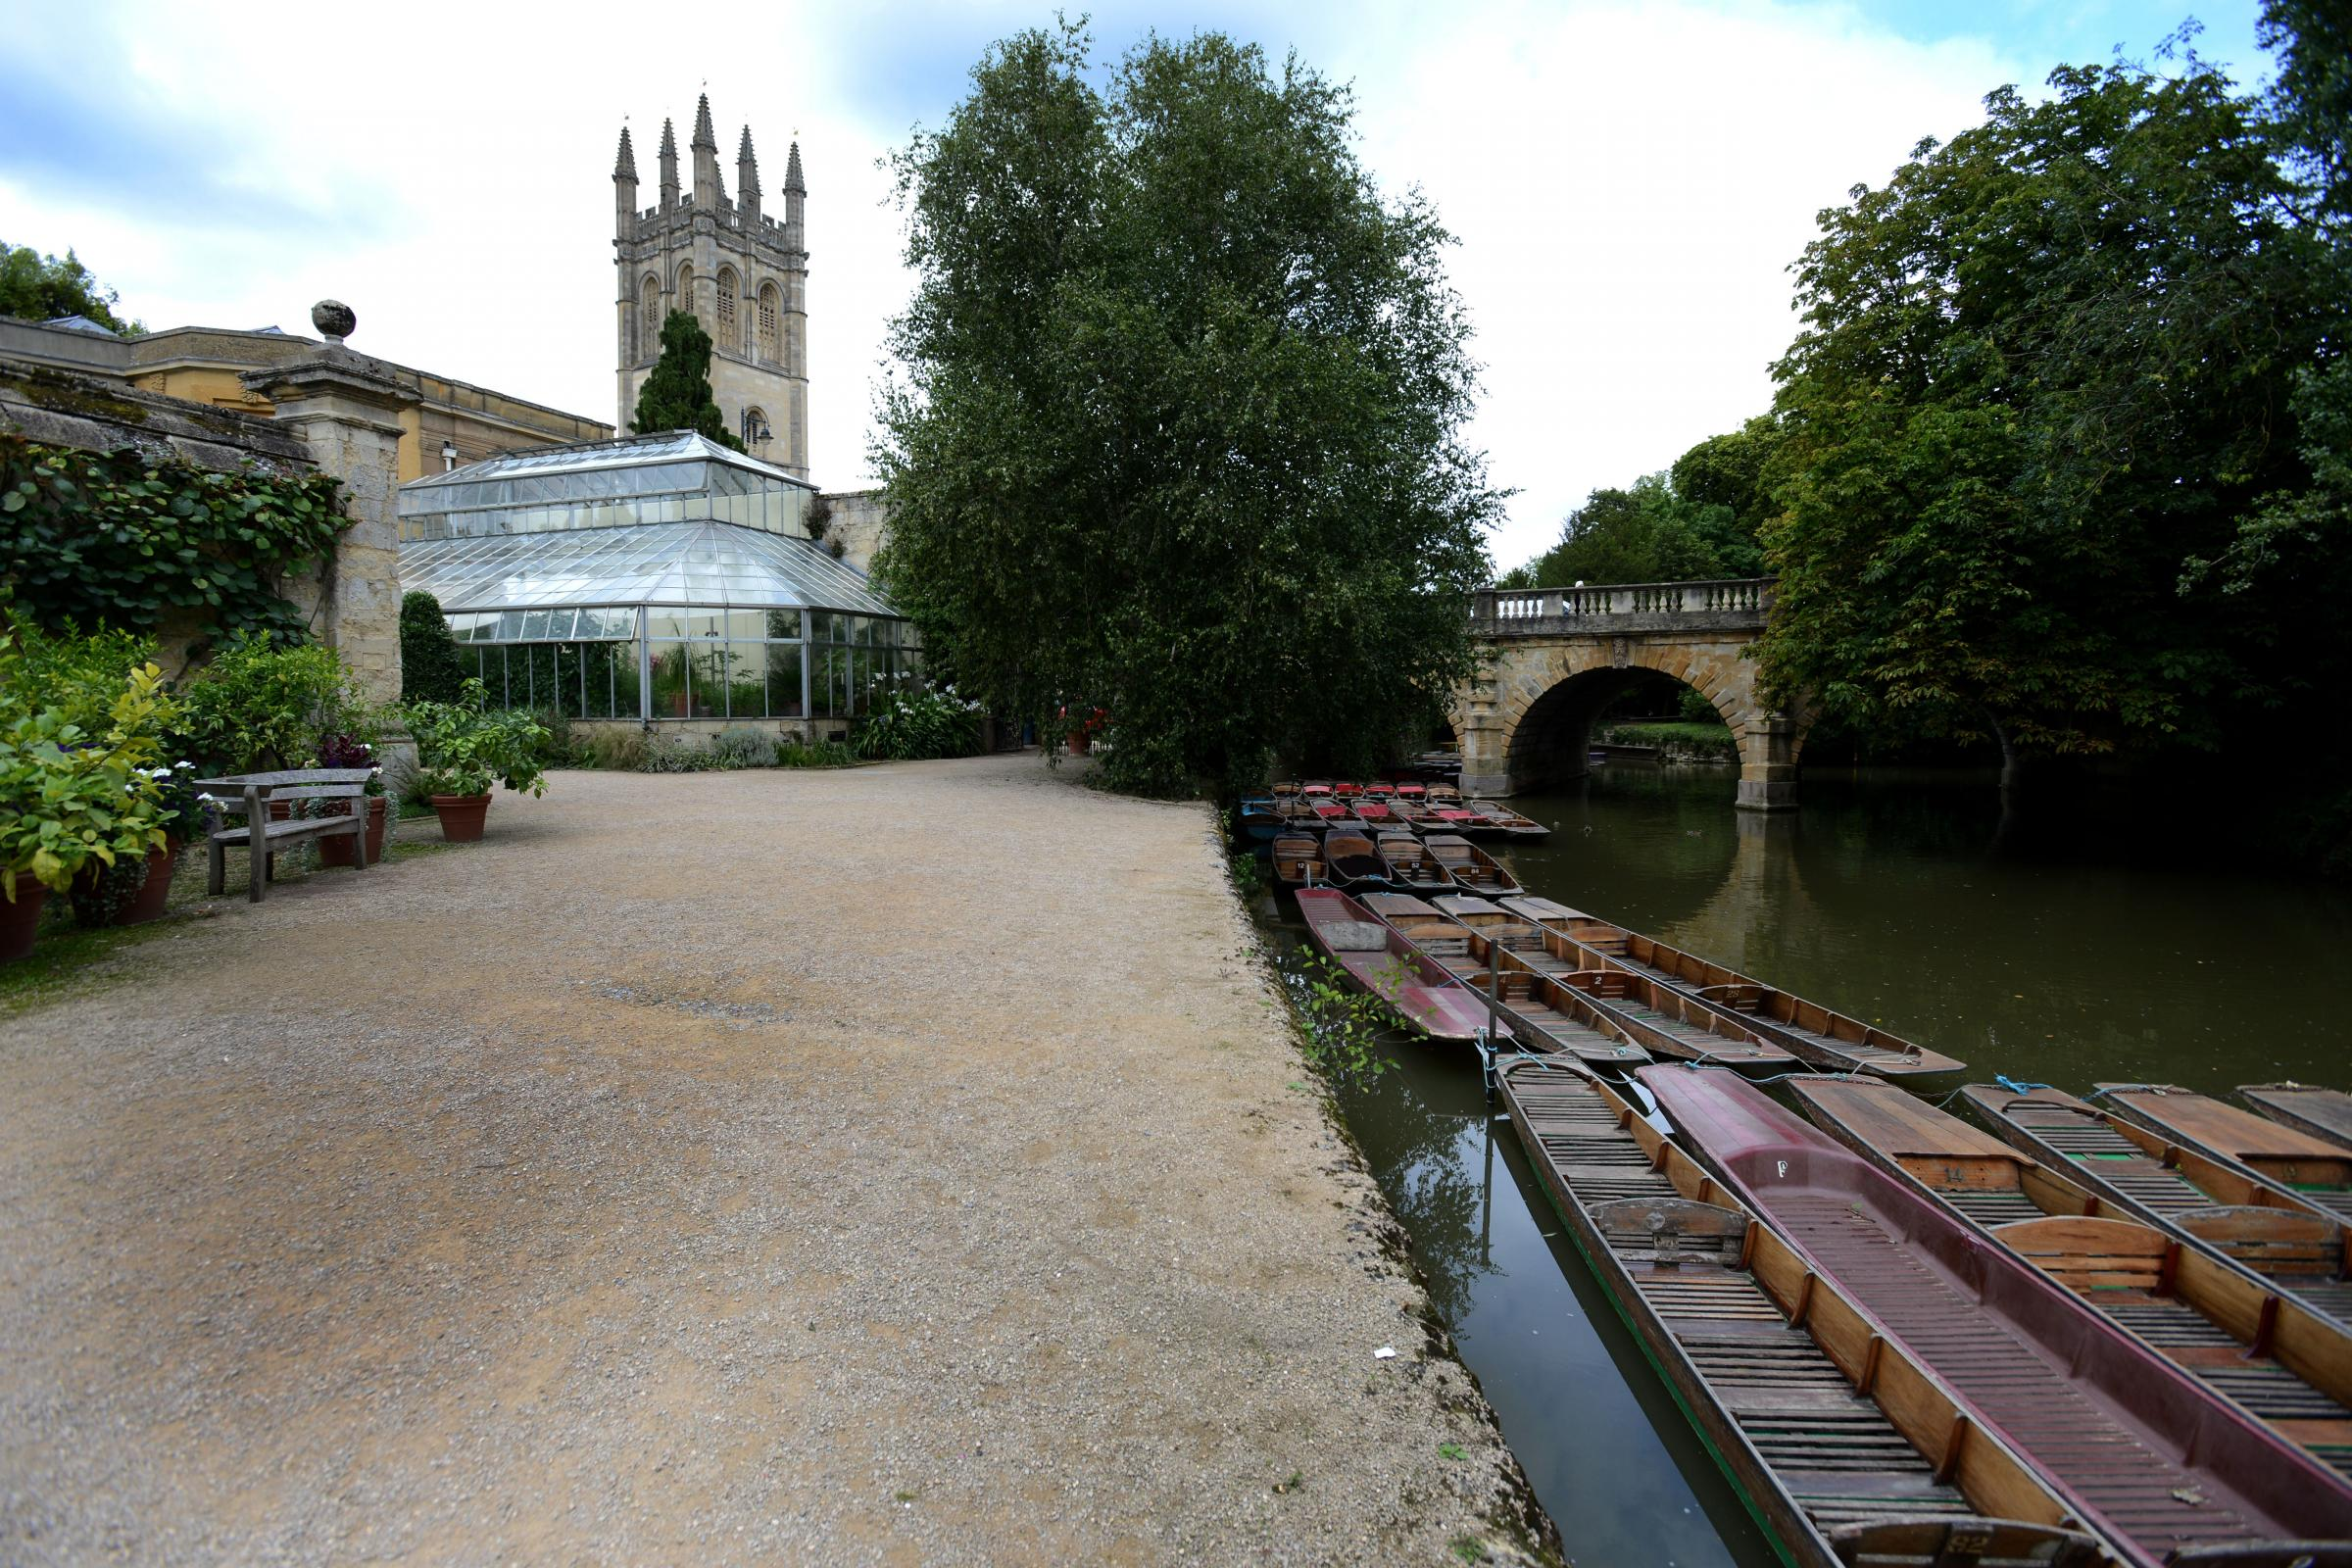 The Thames riverside pathway at Oxford University Botanic Gardens with Magdalen Bridge in the background. Picture: Richard Cave